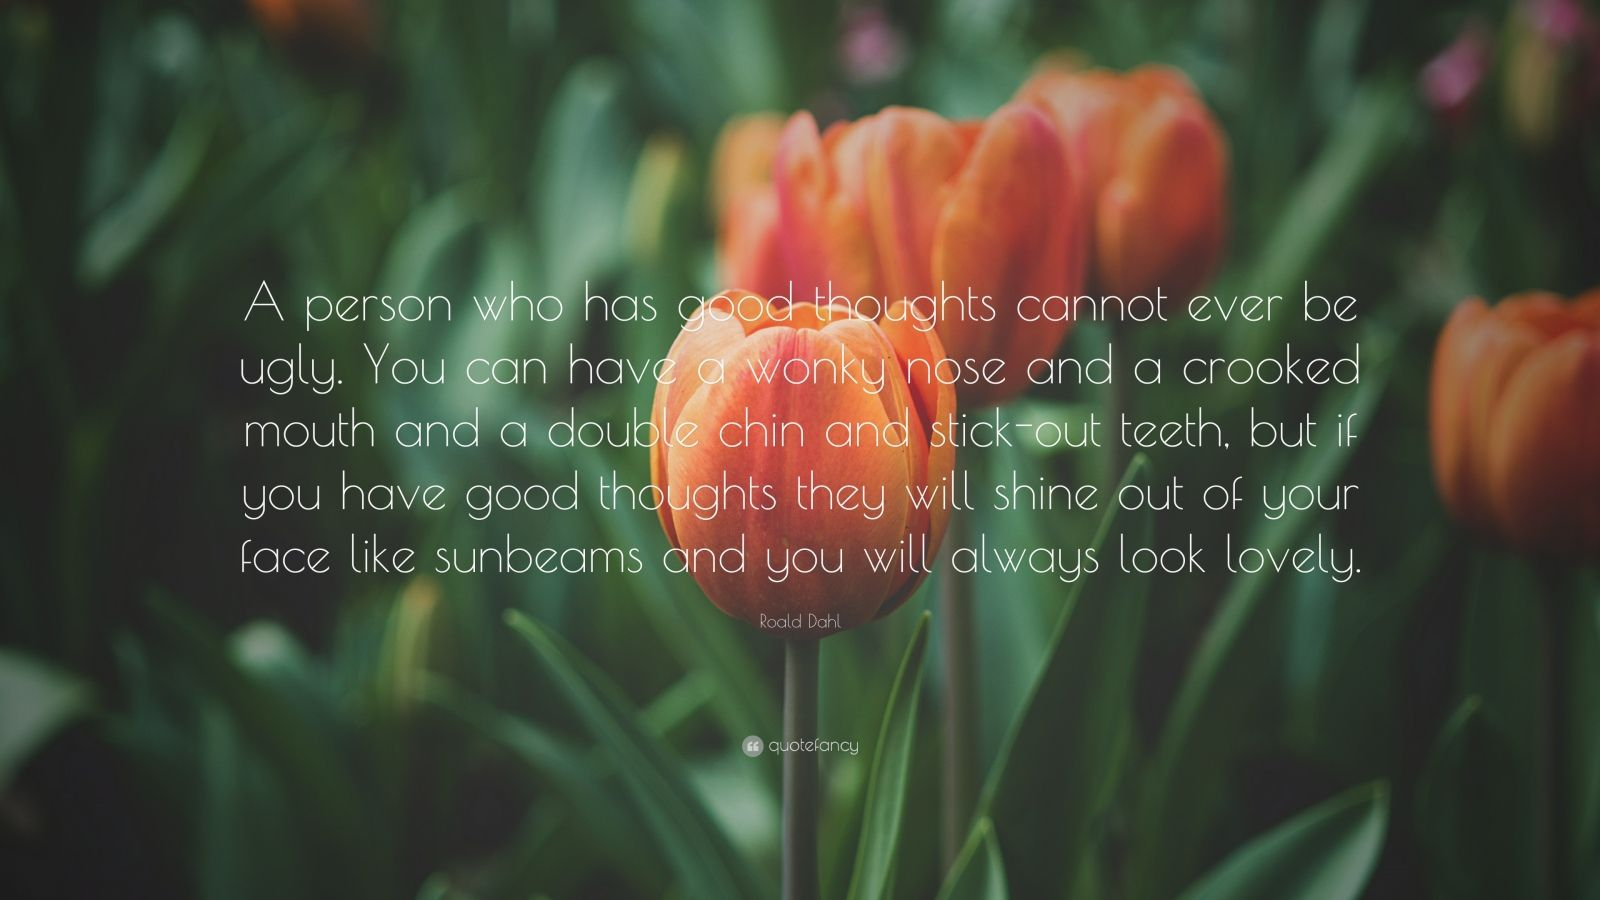 """Roald Dahl Quote: """"A person who has good thoughts cannot ever be ugly. You can have a wonky nose and a crooked mouth and a double chin and stick-out teeth, but if you have good thoughts they will shine out of your face like sunbeams and you will always look lovely."""""""